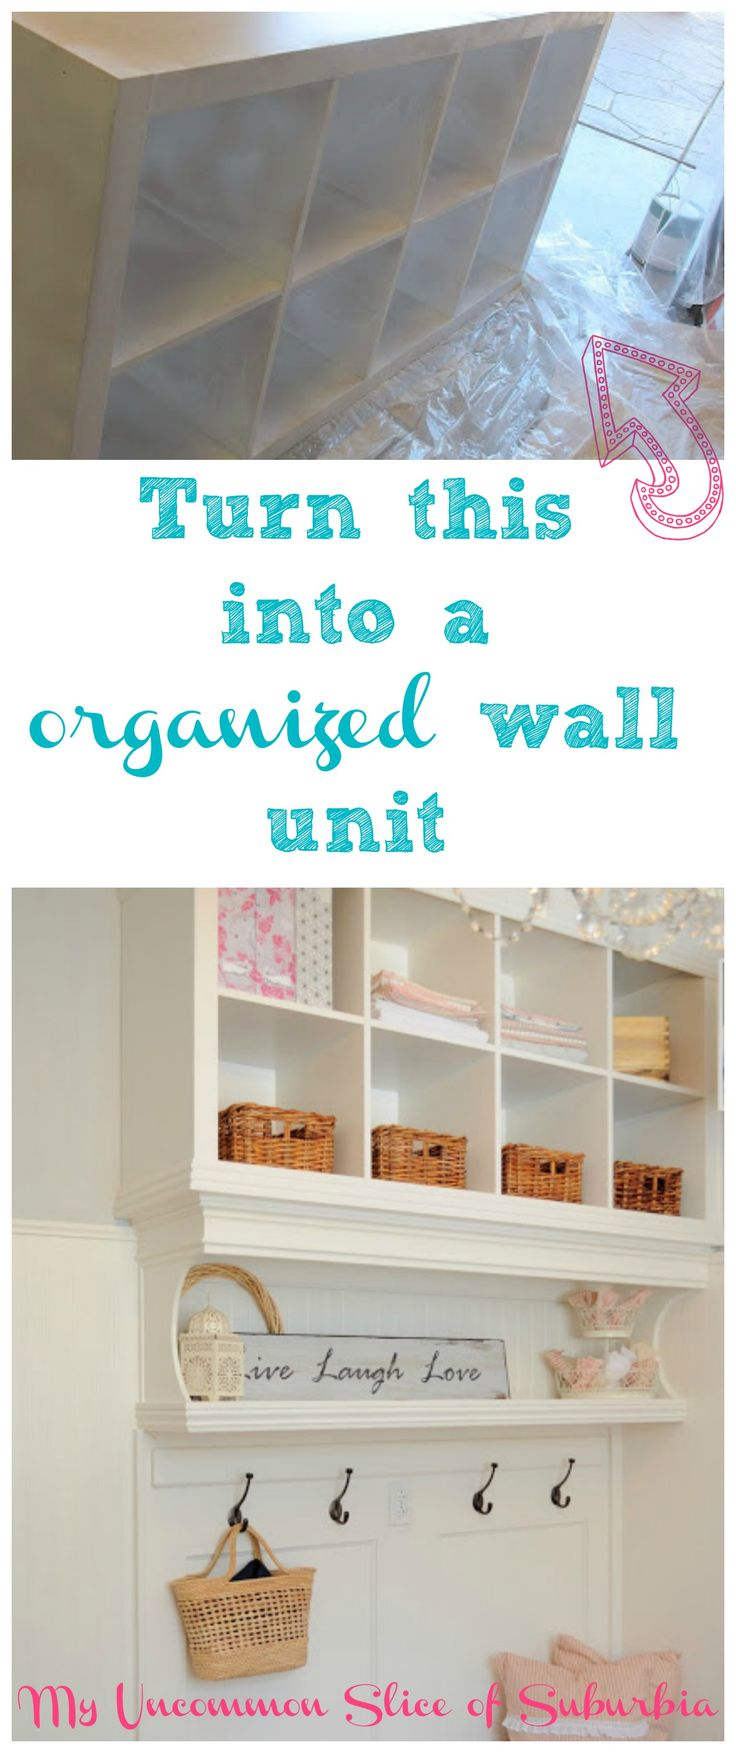 How to take two bookshelves and make them into a wall unit